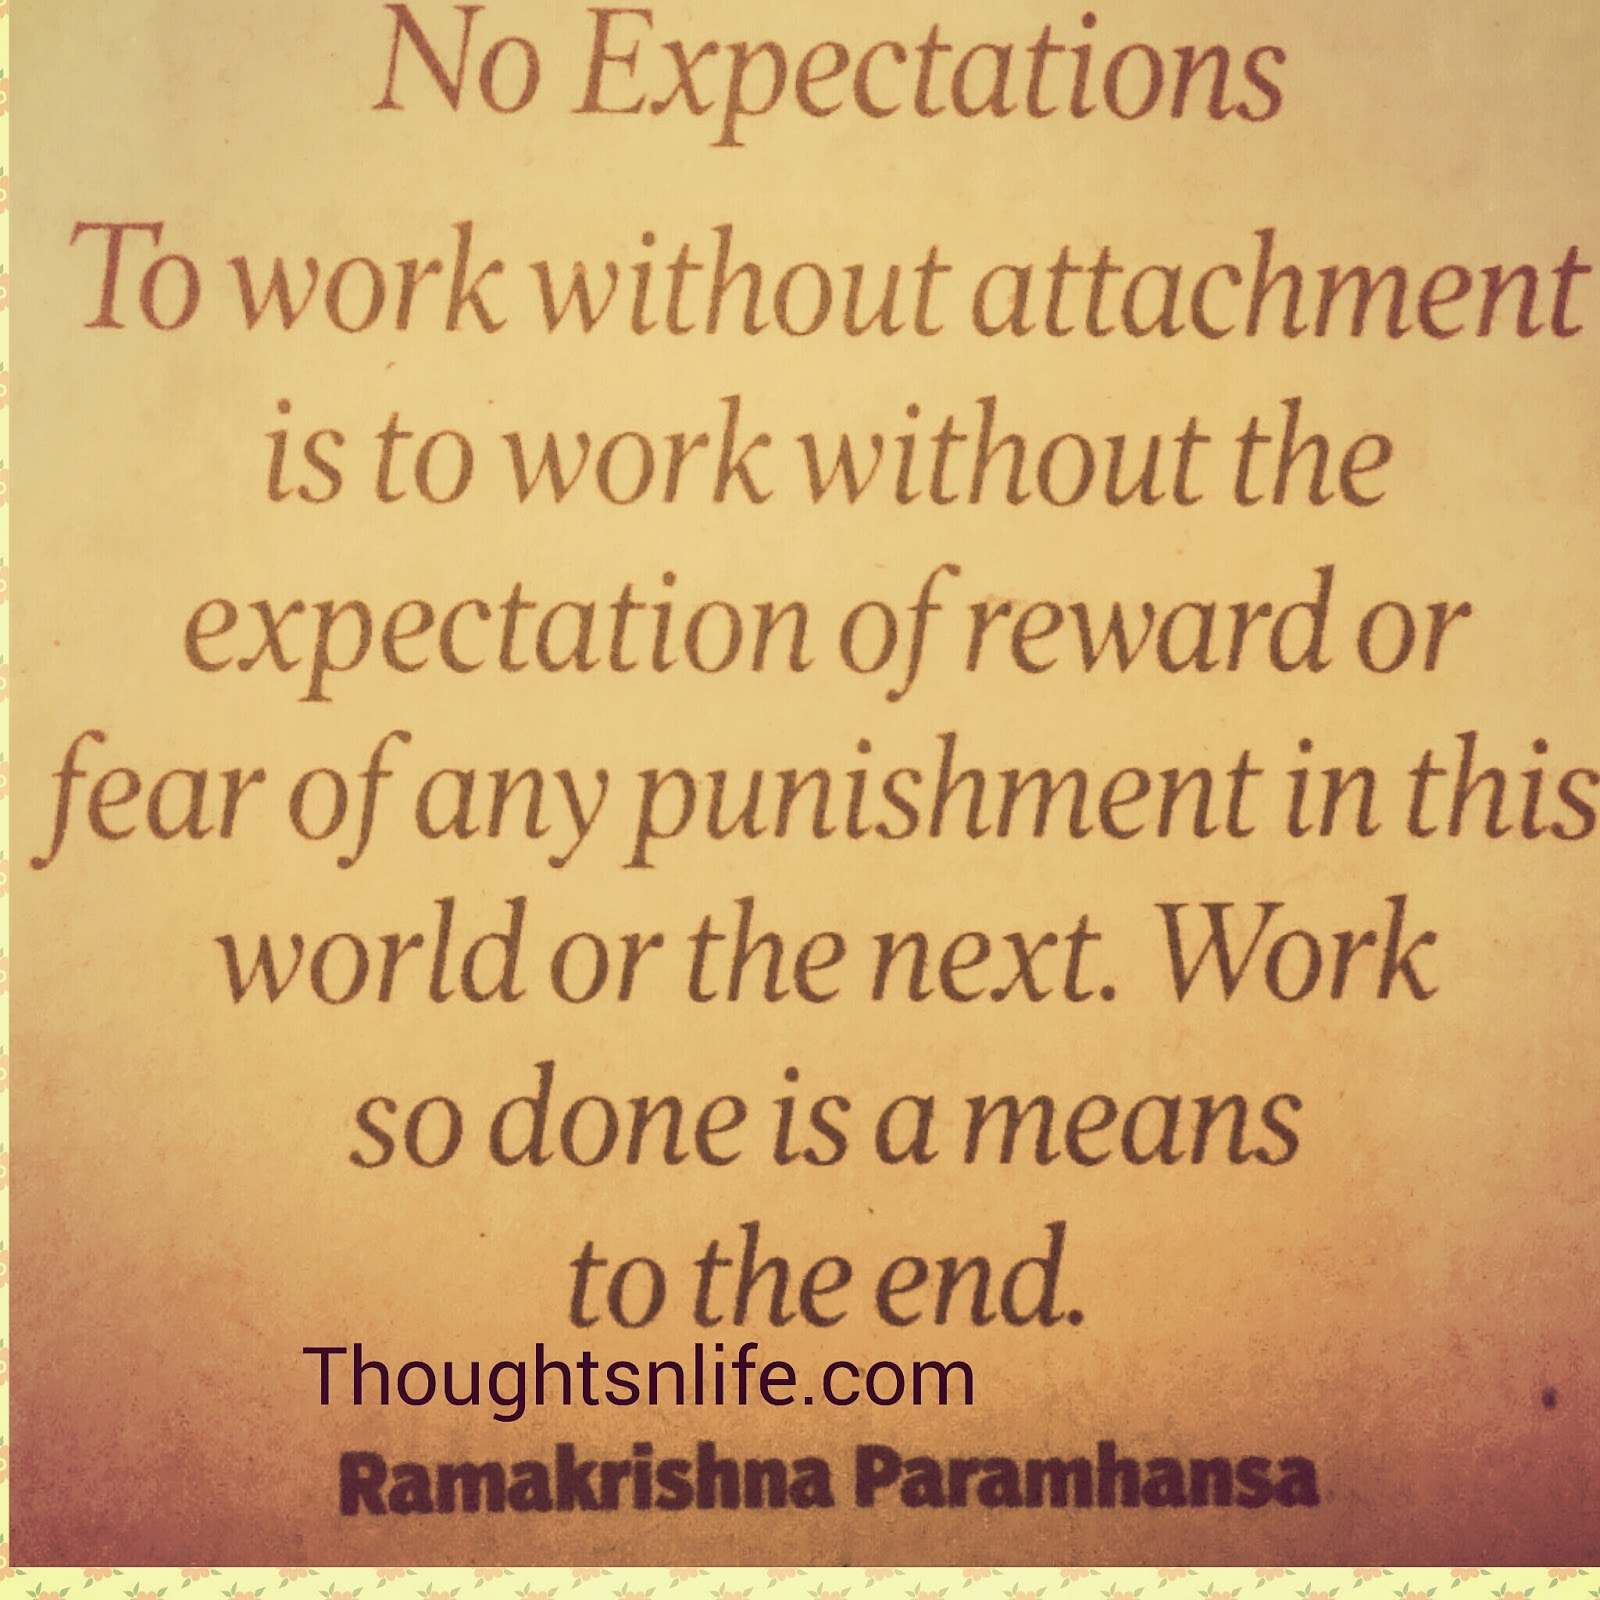 Thoughtsnlife.com: No Expectations- To work without attachment is to work without the expectation of reward or fear of any punishment in this world or the next. Work so done is a means  to the end. ~ Ramakrishna paramhansa